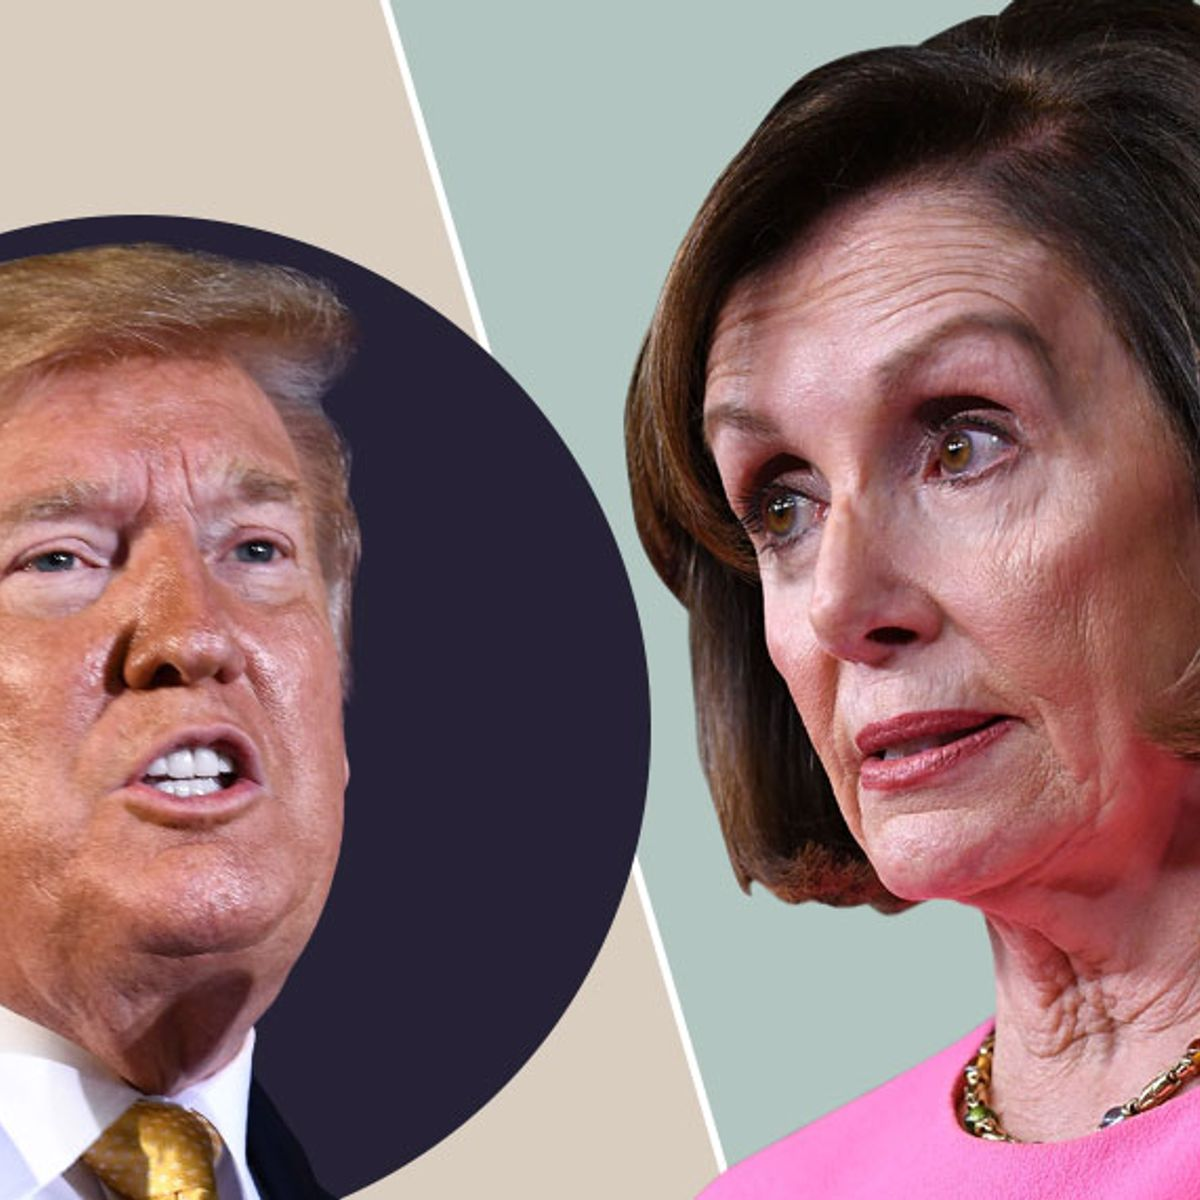 Democrats unveil articles of impeachment against Trump for abuse of power and obstruction of justice